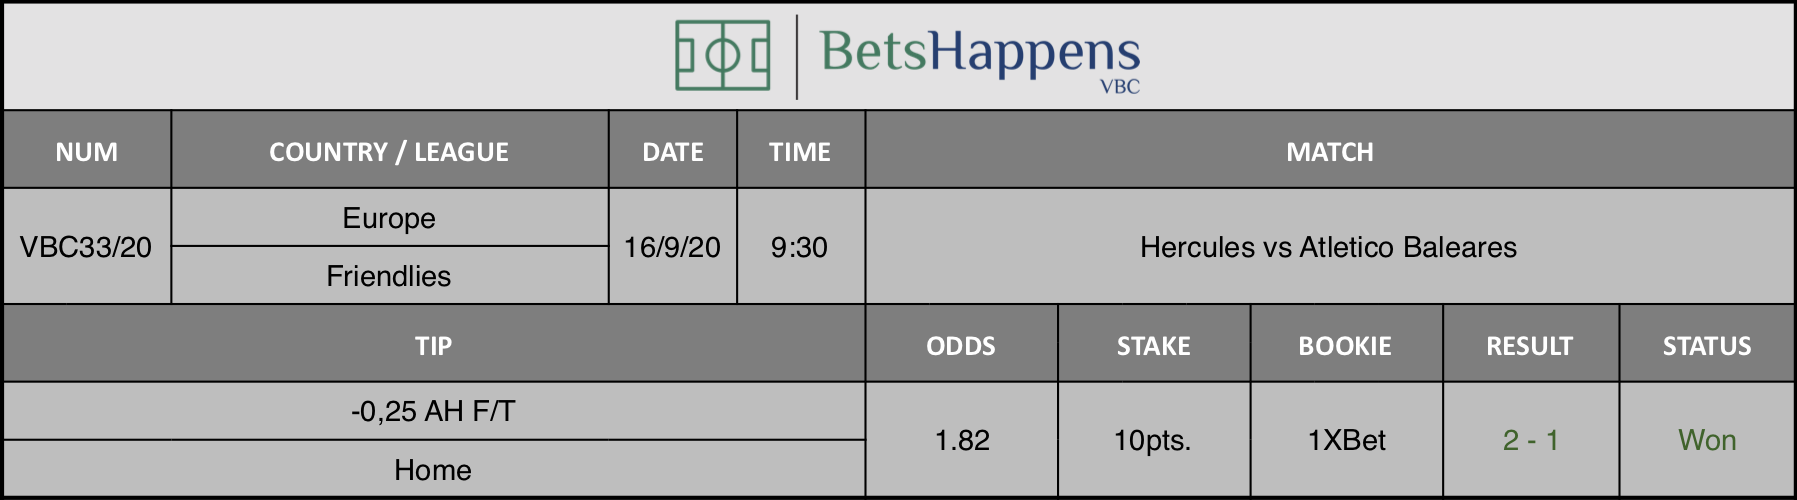 Results of our advice for the Hercules vs Atletico Baleares match in which -0.25 AH F / T Home is recommended.